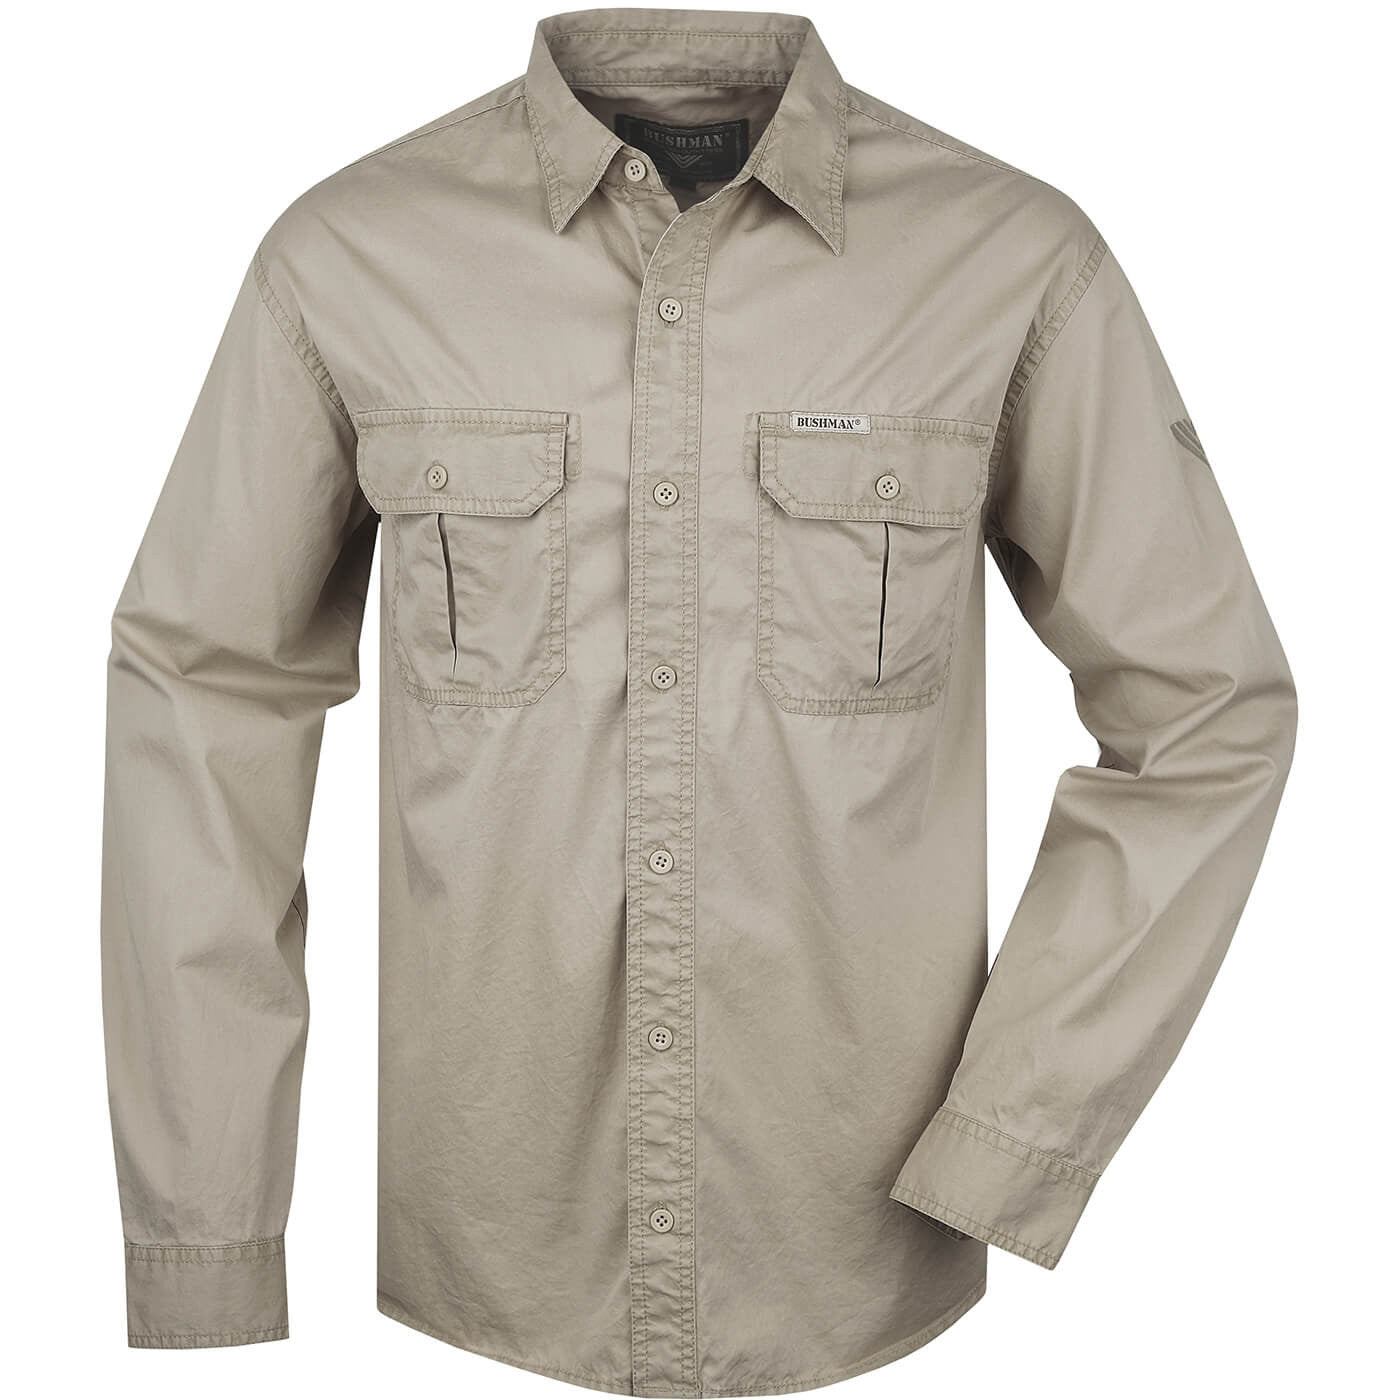 BUSHMANSHOP DRYDEN MEN'S BEIGE/GREEN COTTON ROLL-UP LONG SLEEVE SAFARI SHIRT